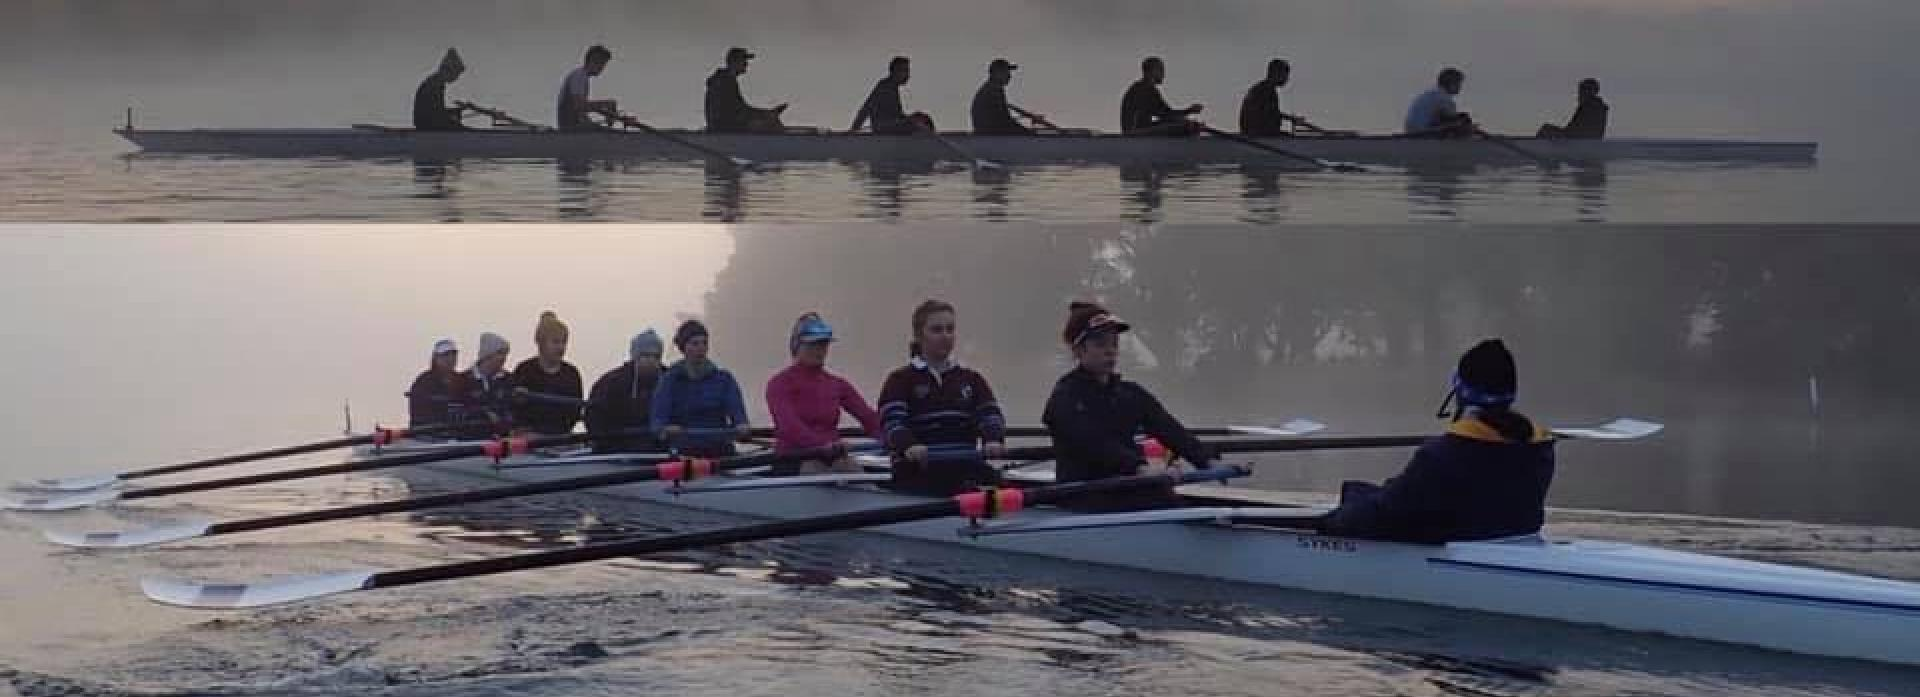 ANU Boat CLub mens & women's 8s